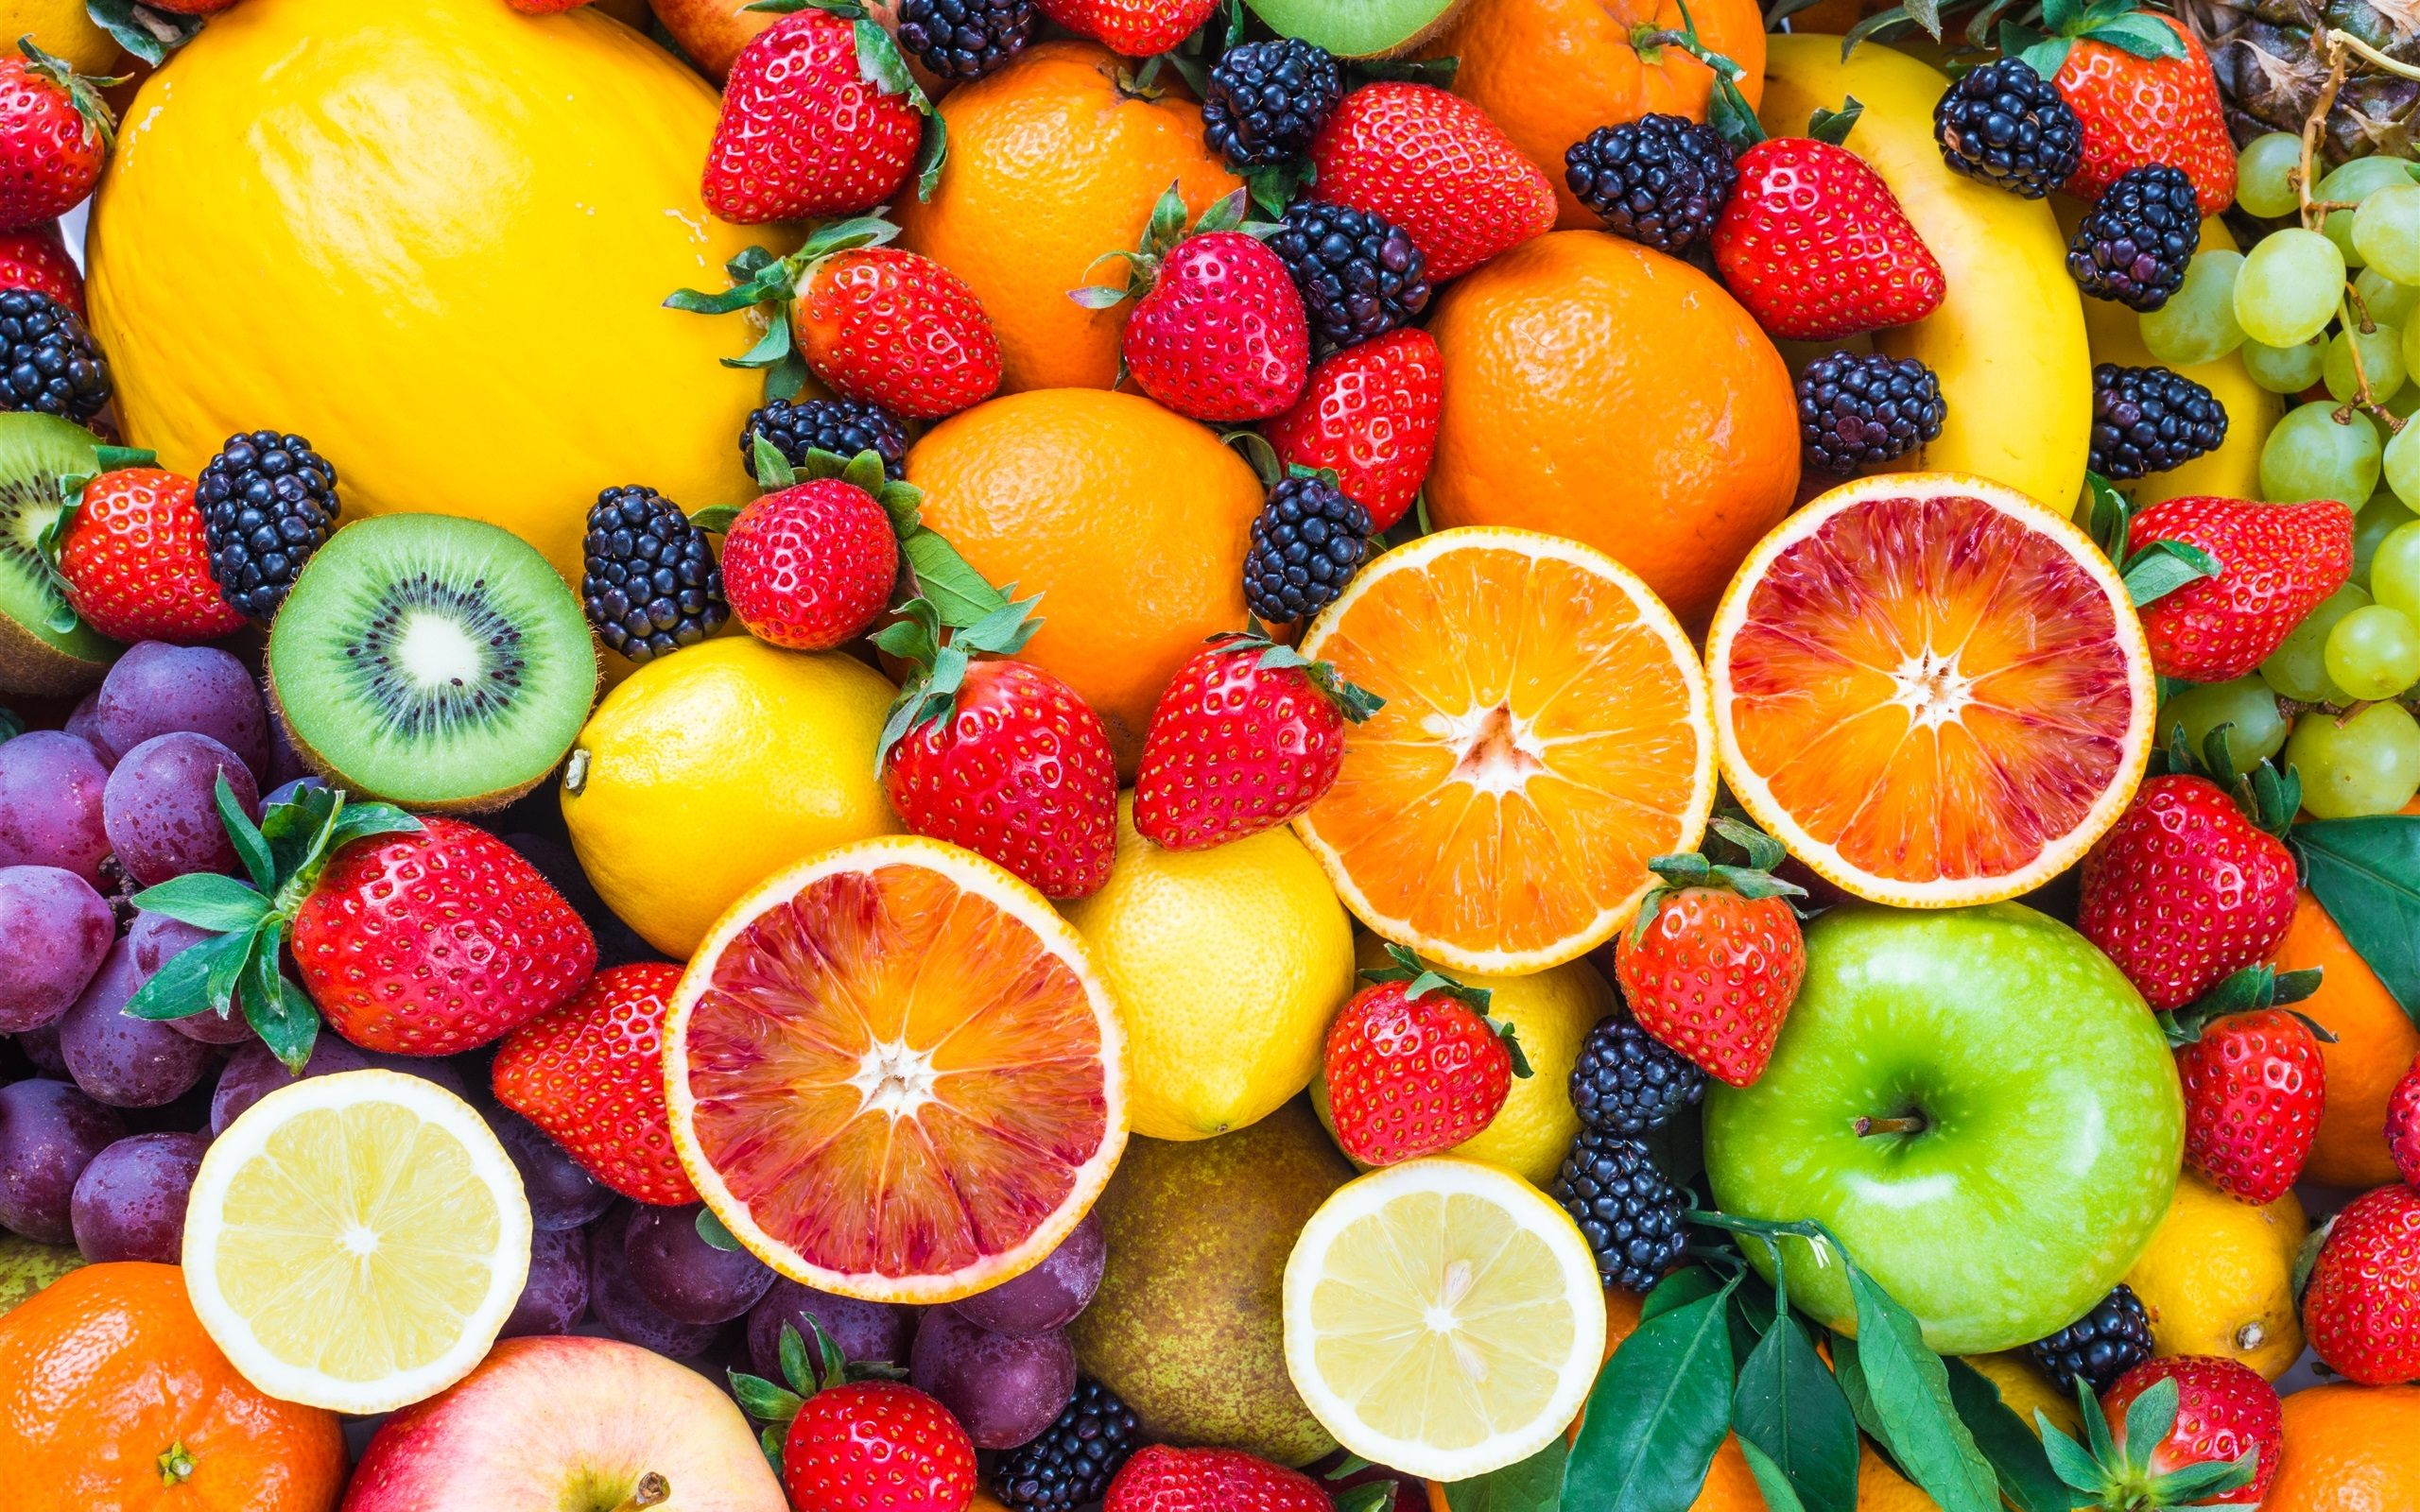 All Fruits Wallpaper For Desktop Of Mixed Fruit amp Fresh Fruits 2560x1600